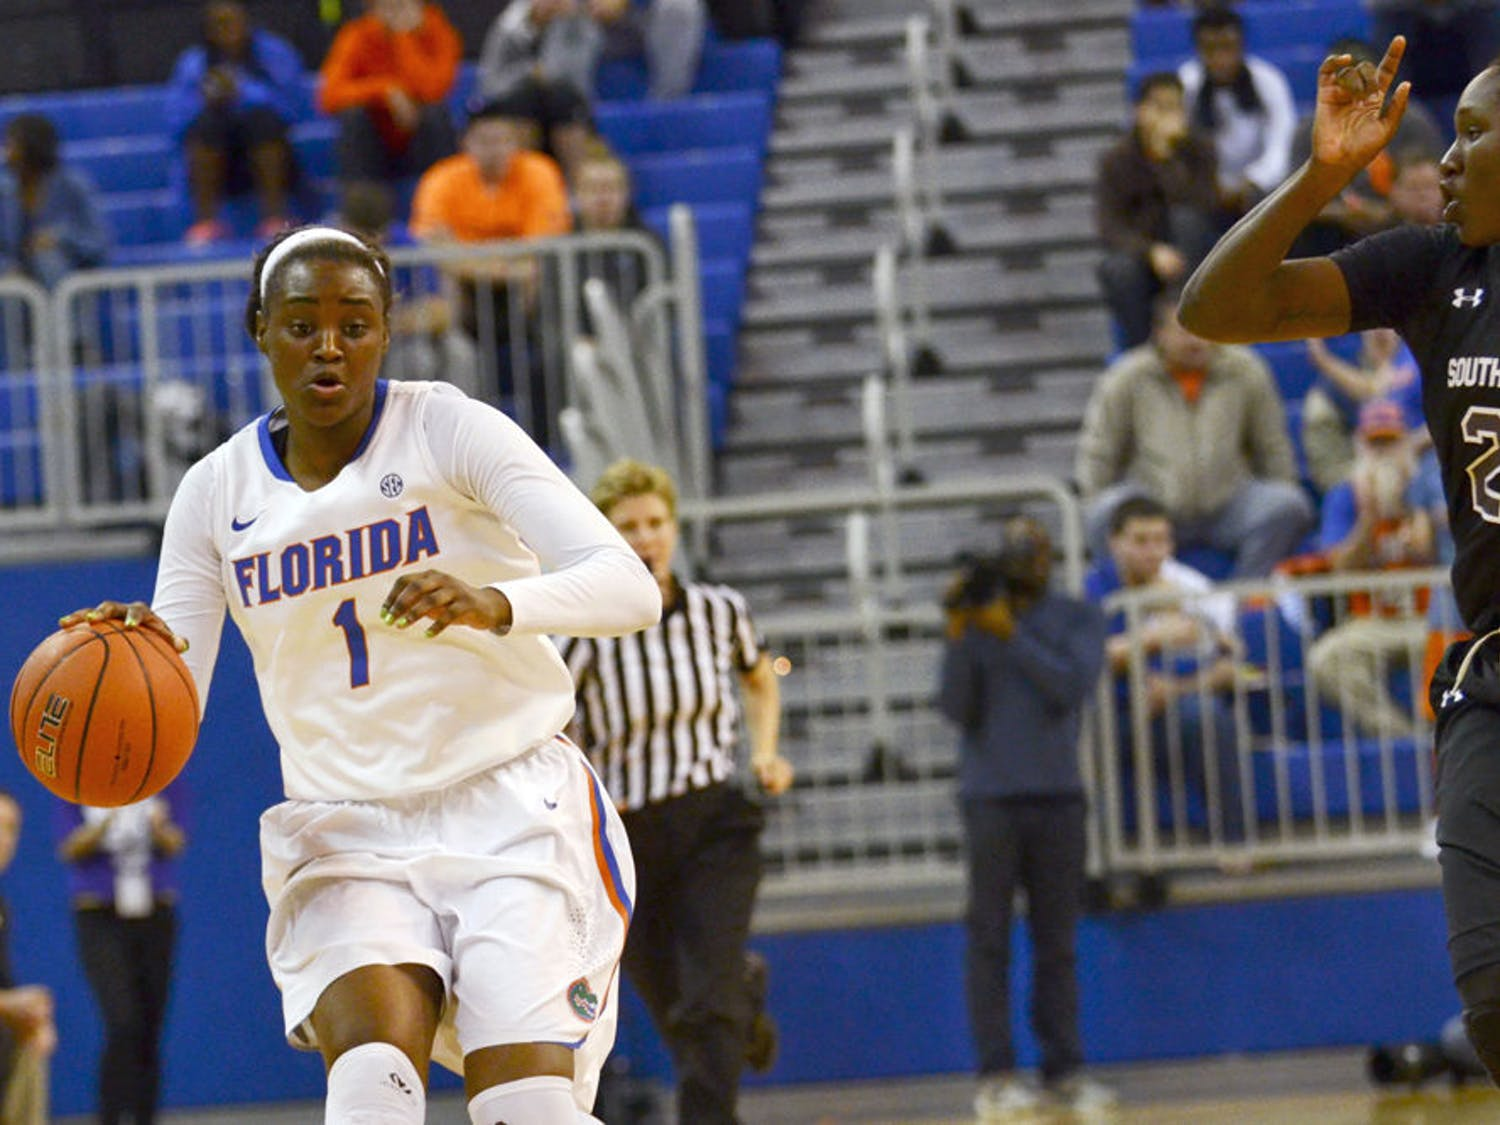 Sophomore Ronni Williams drives down the lane during Florida's 77-42 loss to No. 1 South Carolina on Monday in the O'Connell Center.